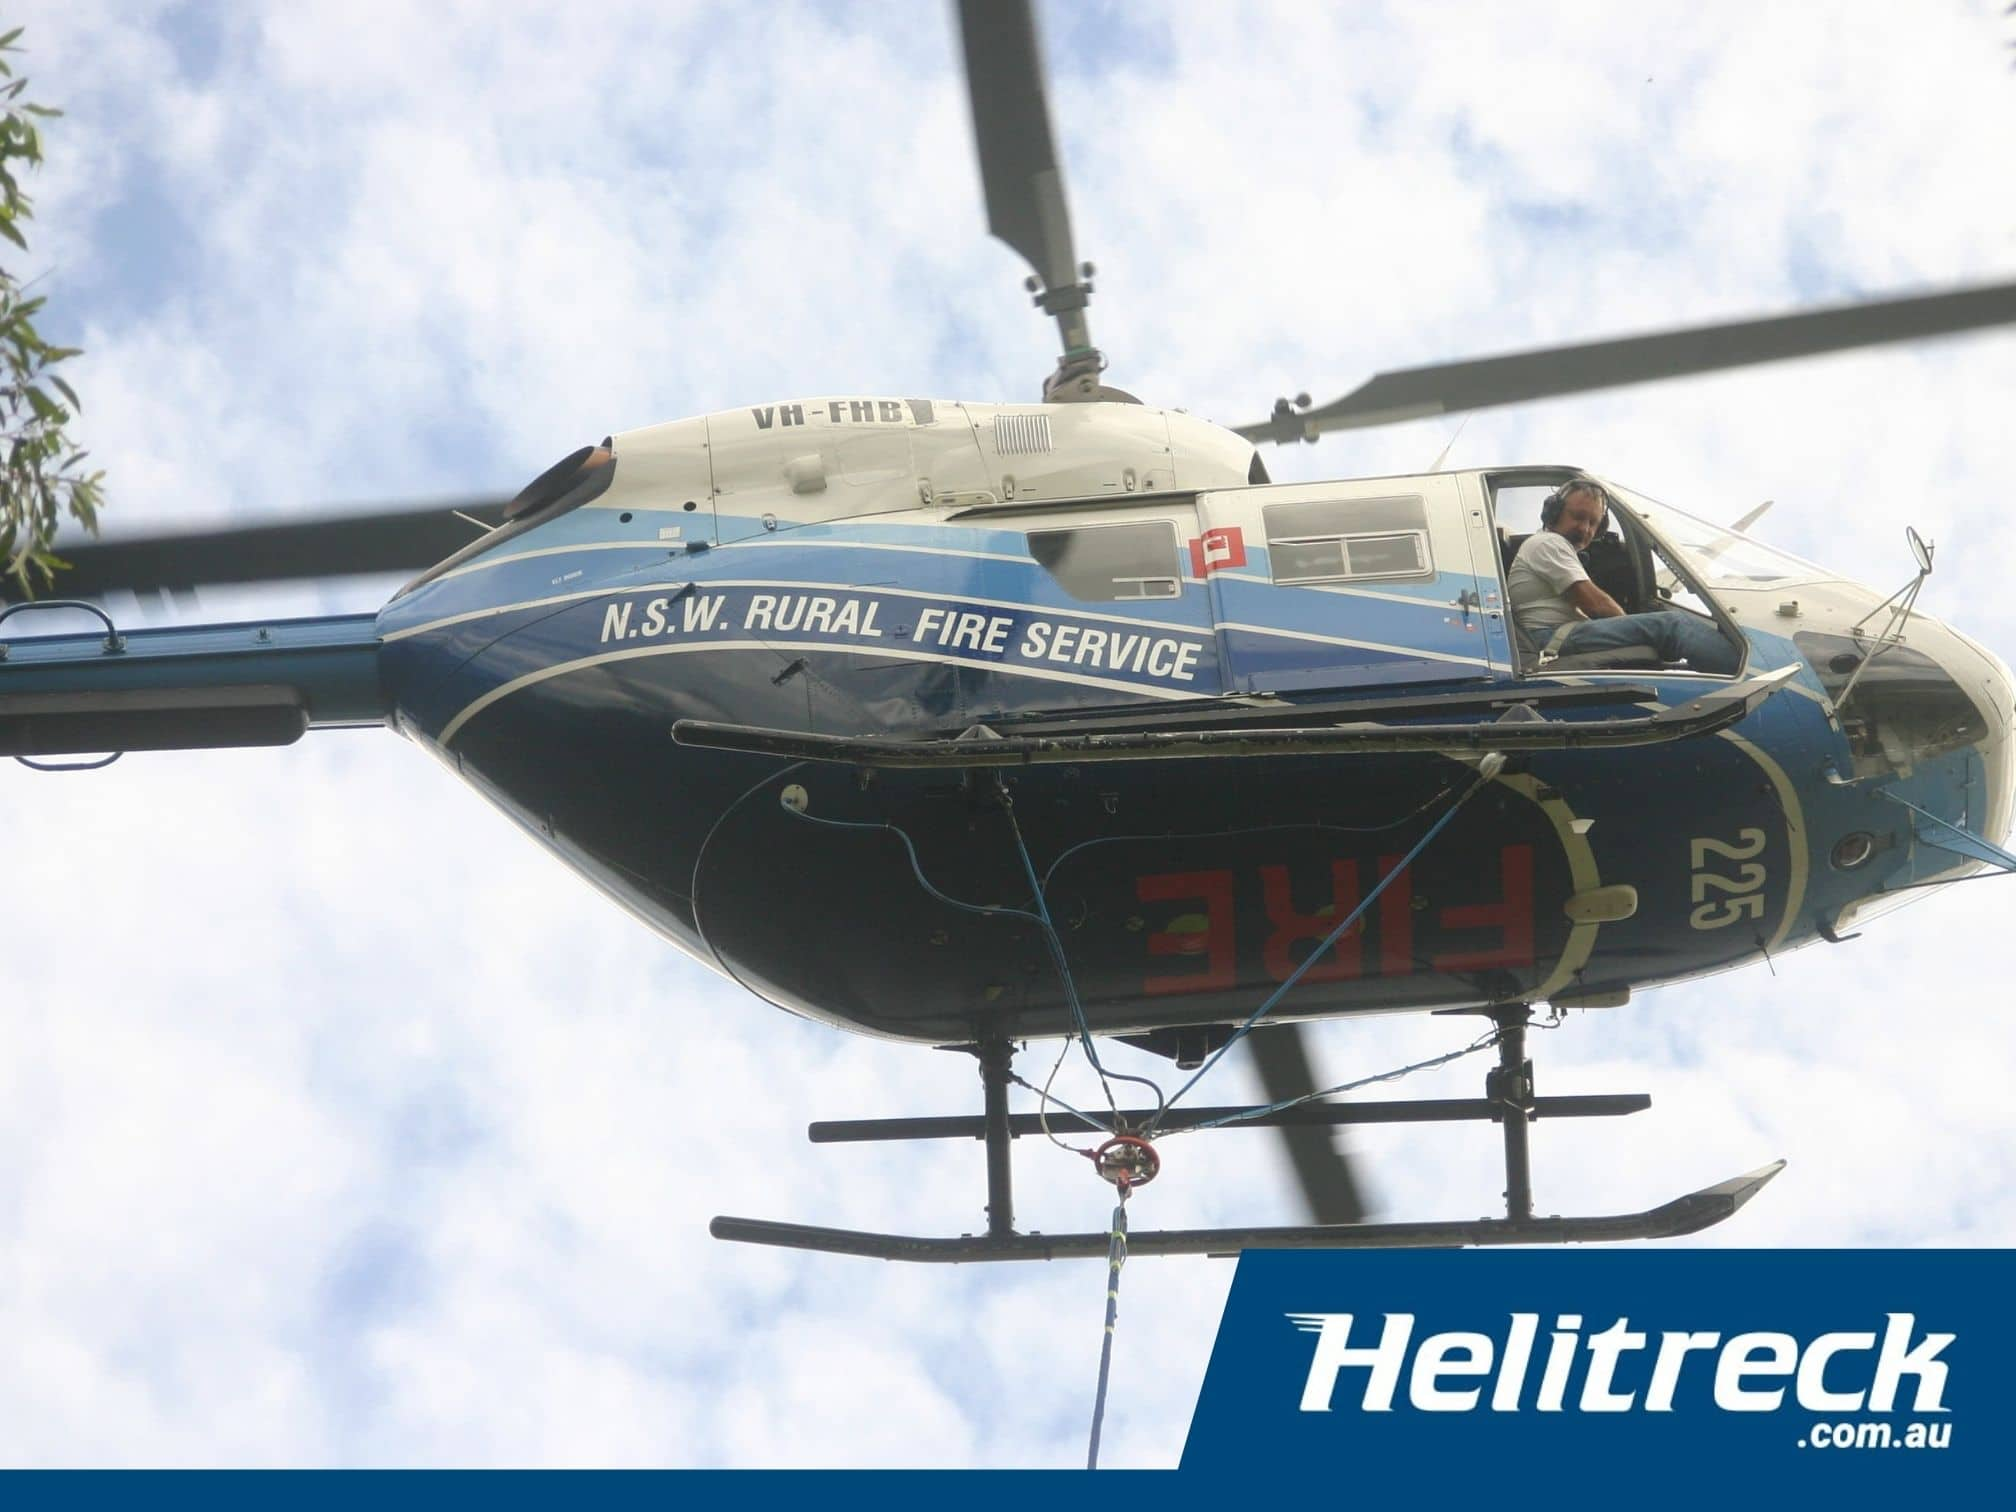 Helicopter Longlines Helitreck3